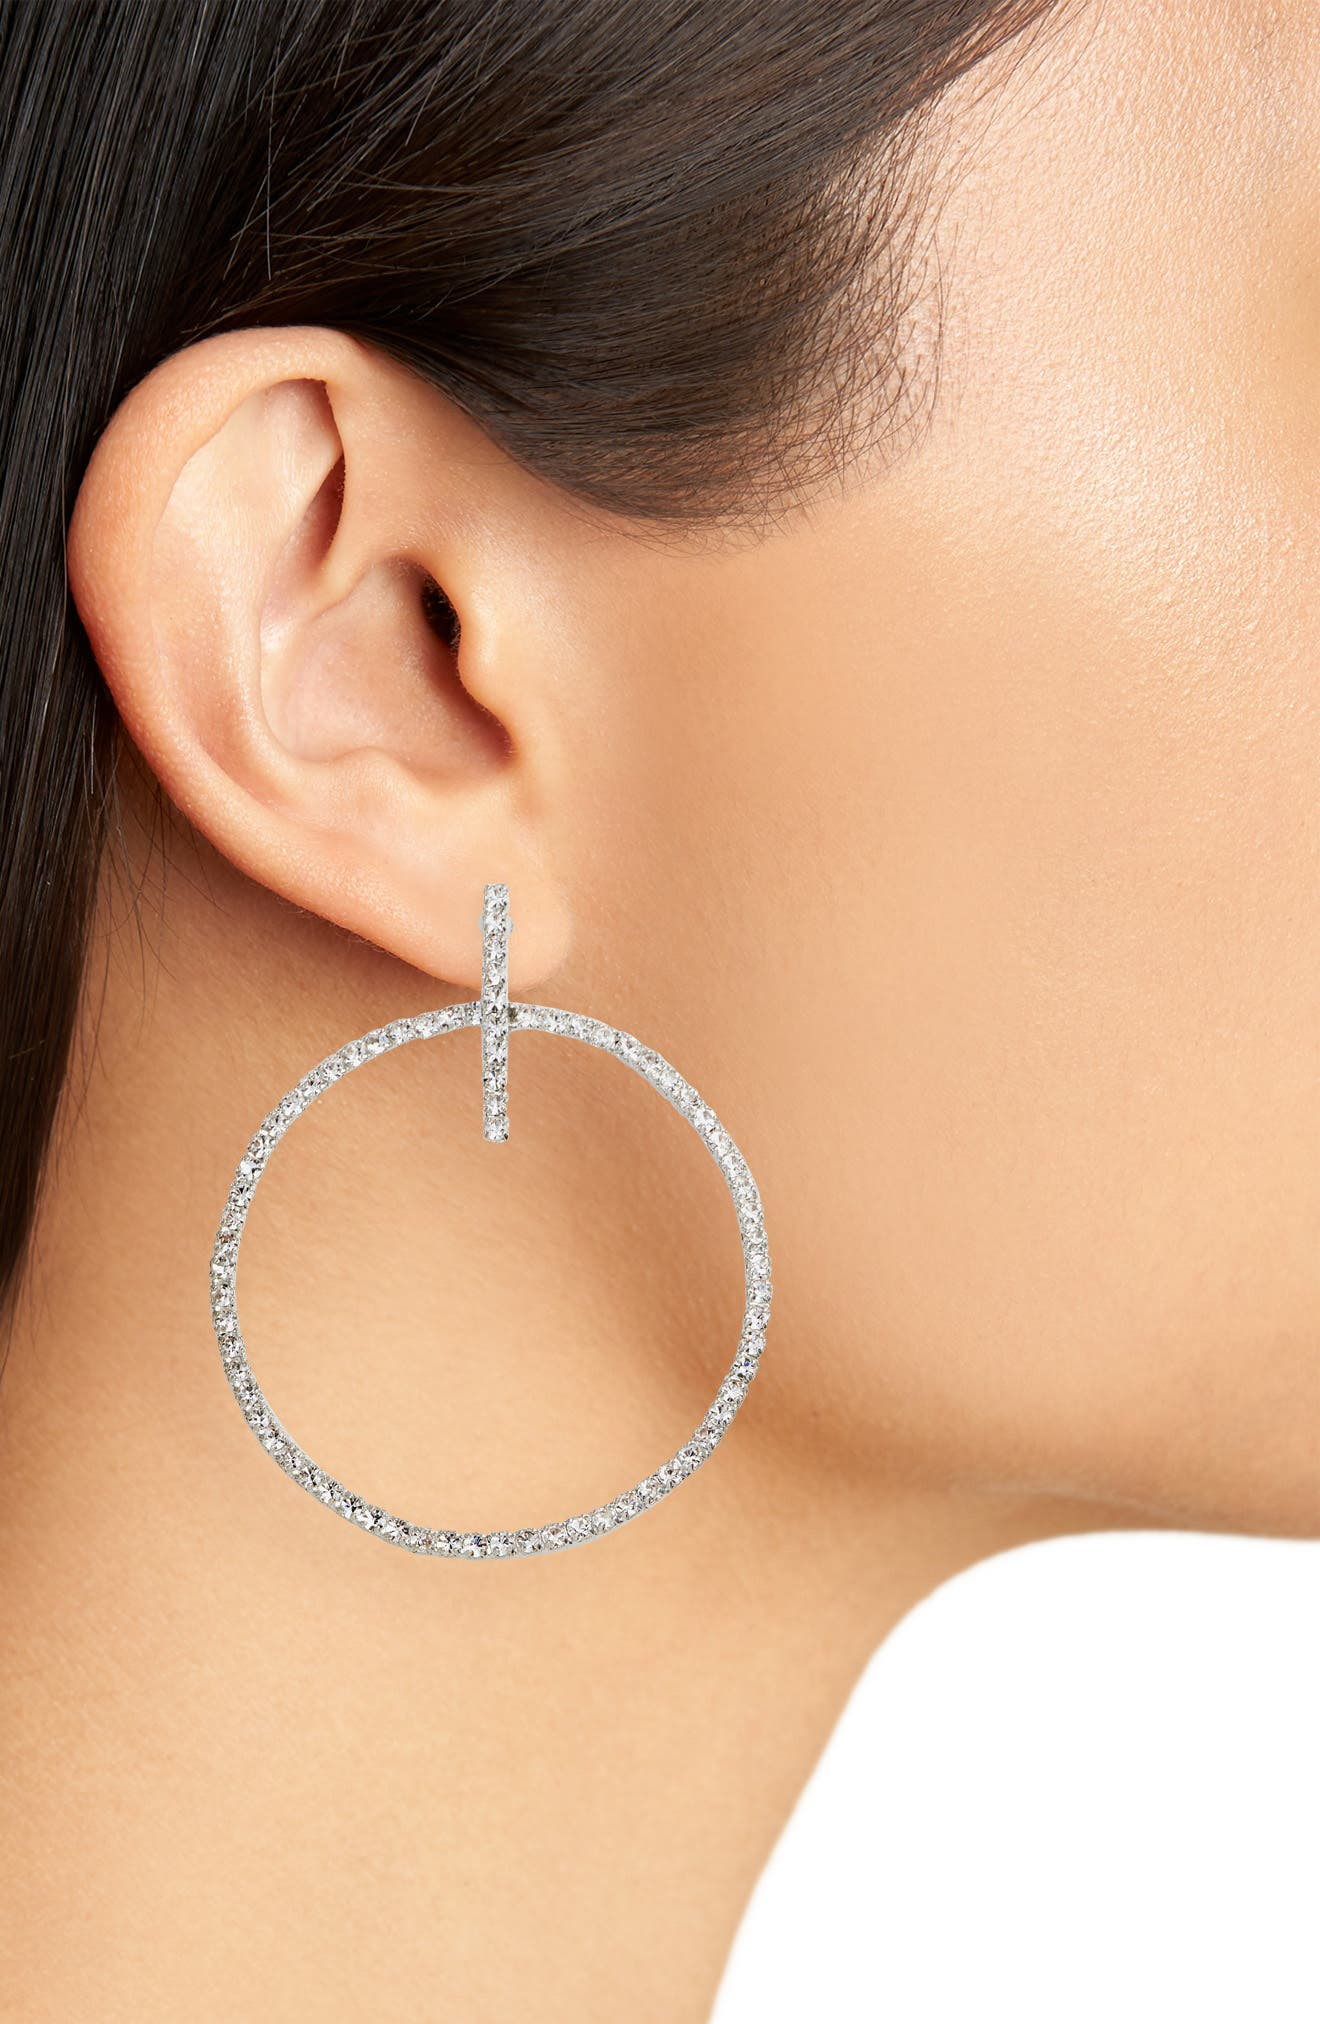 Crystal Hoop Drop Earrings,                             Alternate thumbnail 2, color,                             Crystal/ Silver